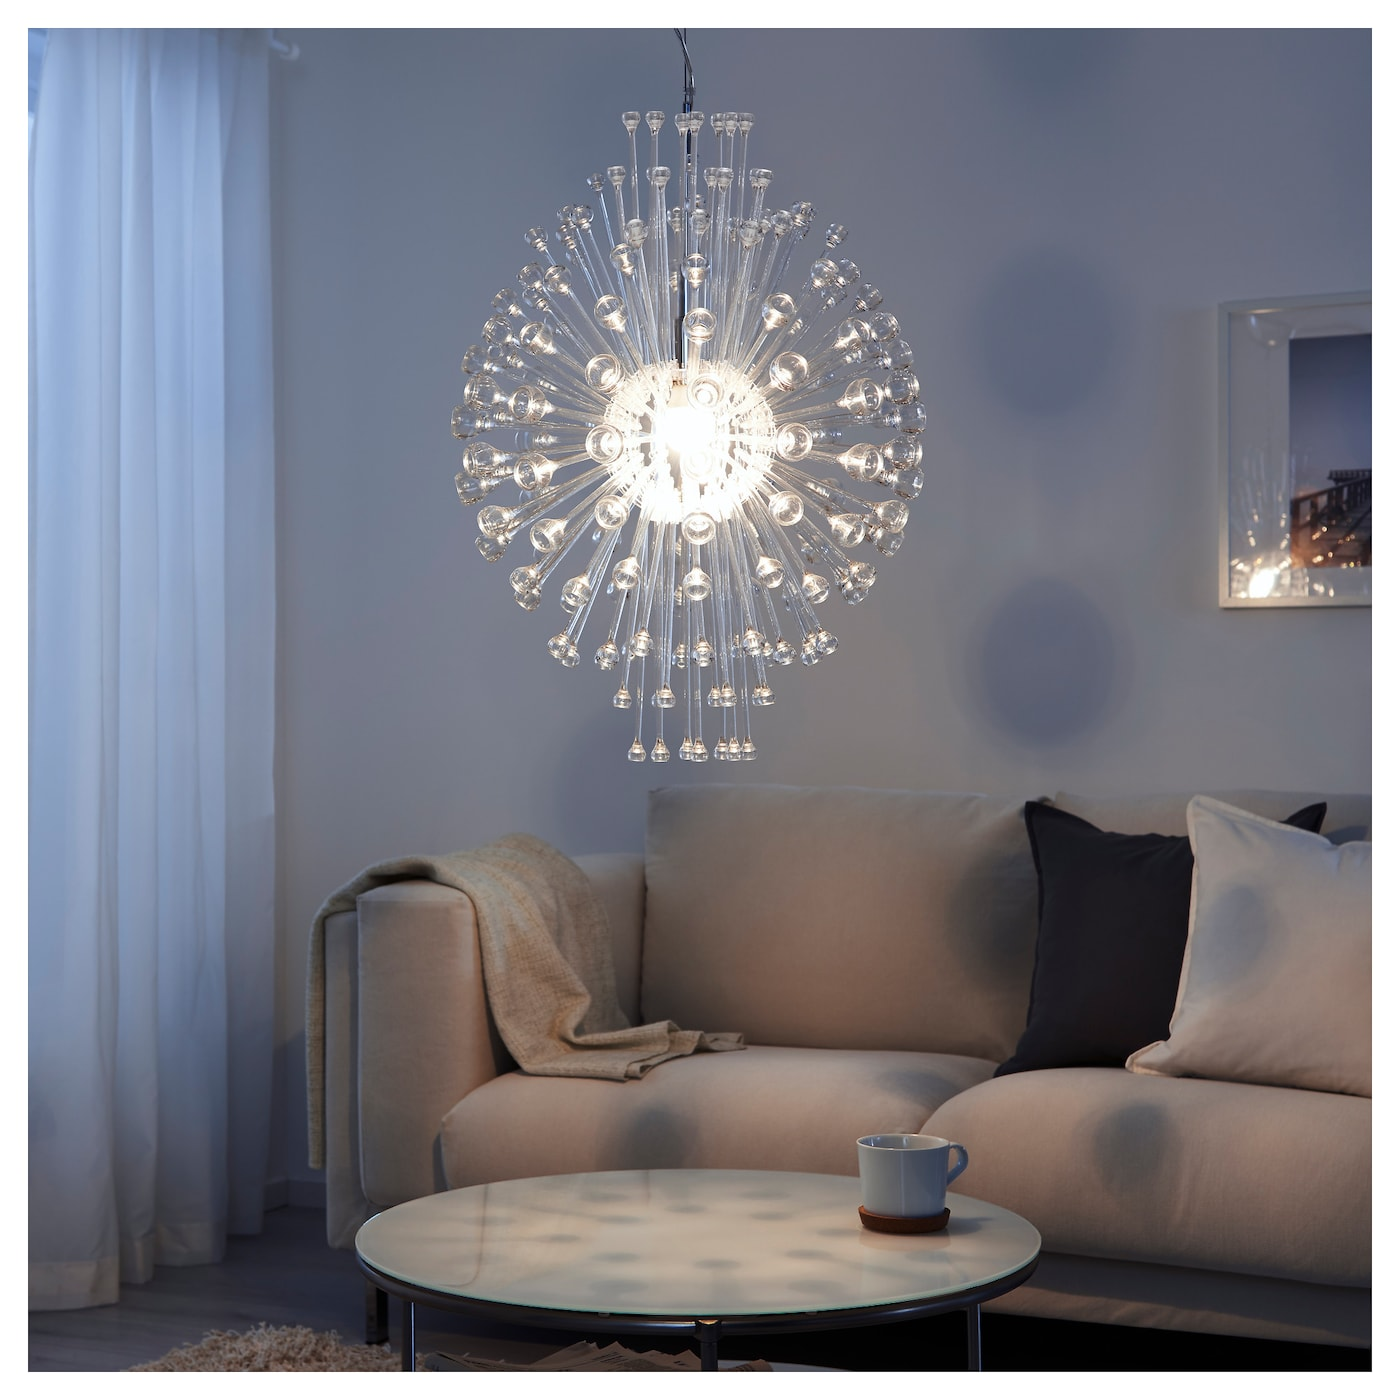 Stockholm chandelier ikea ikea stockholm chandelier gives decorative patterns on the ceiling and on the wall aloadofball Choice Image